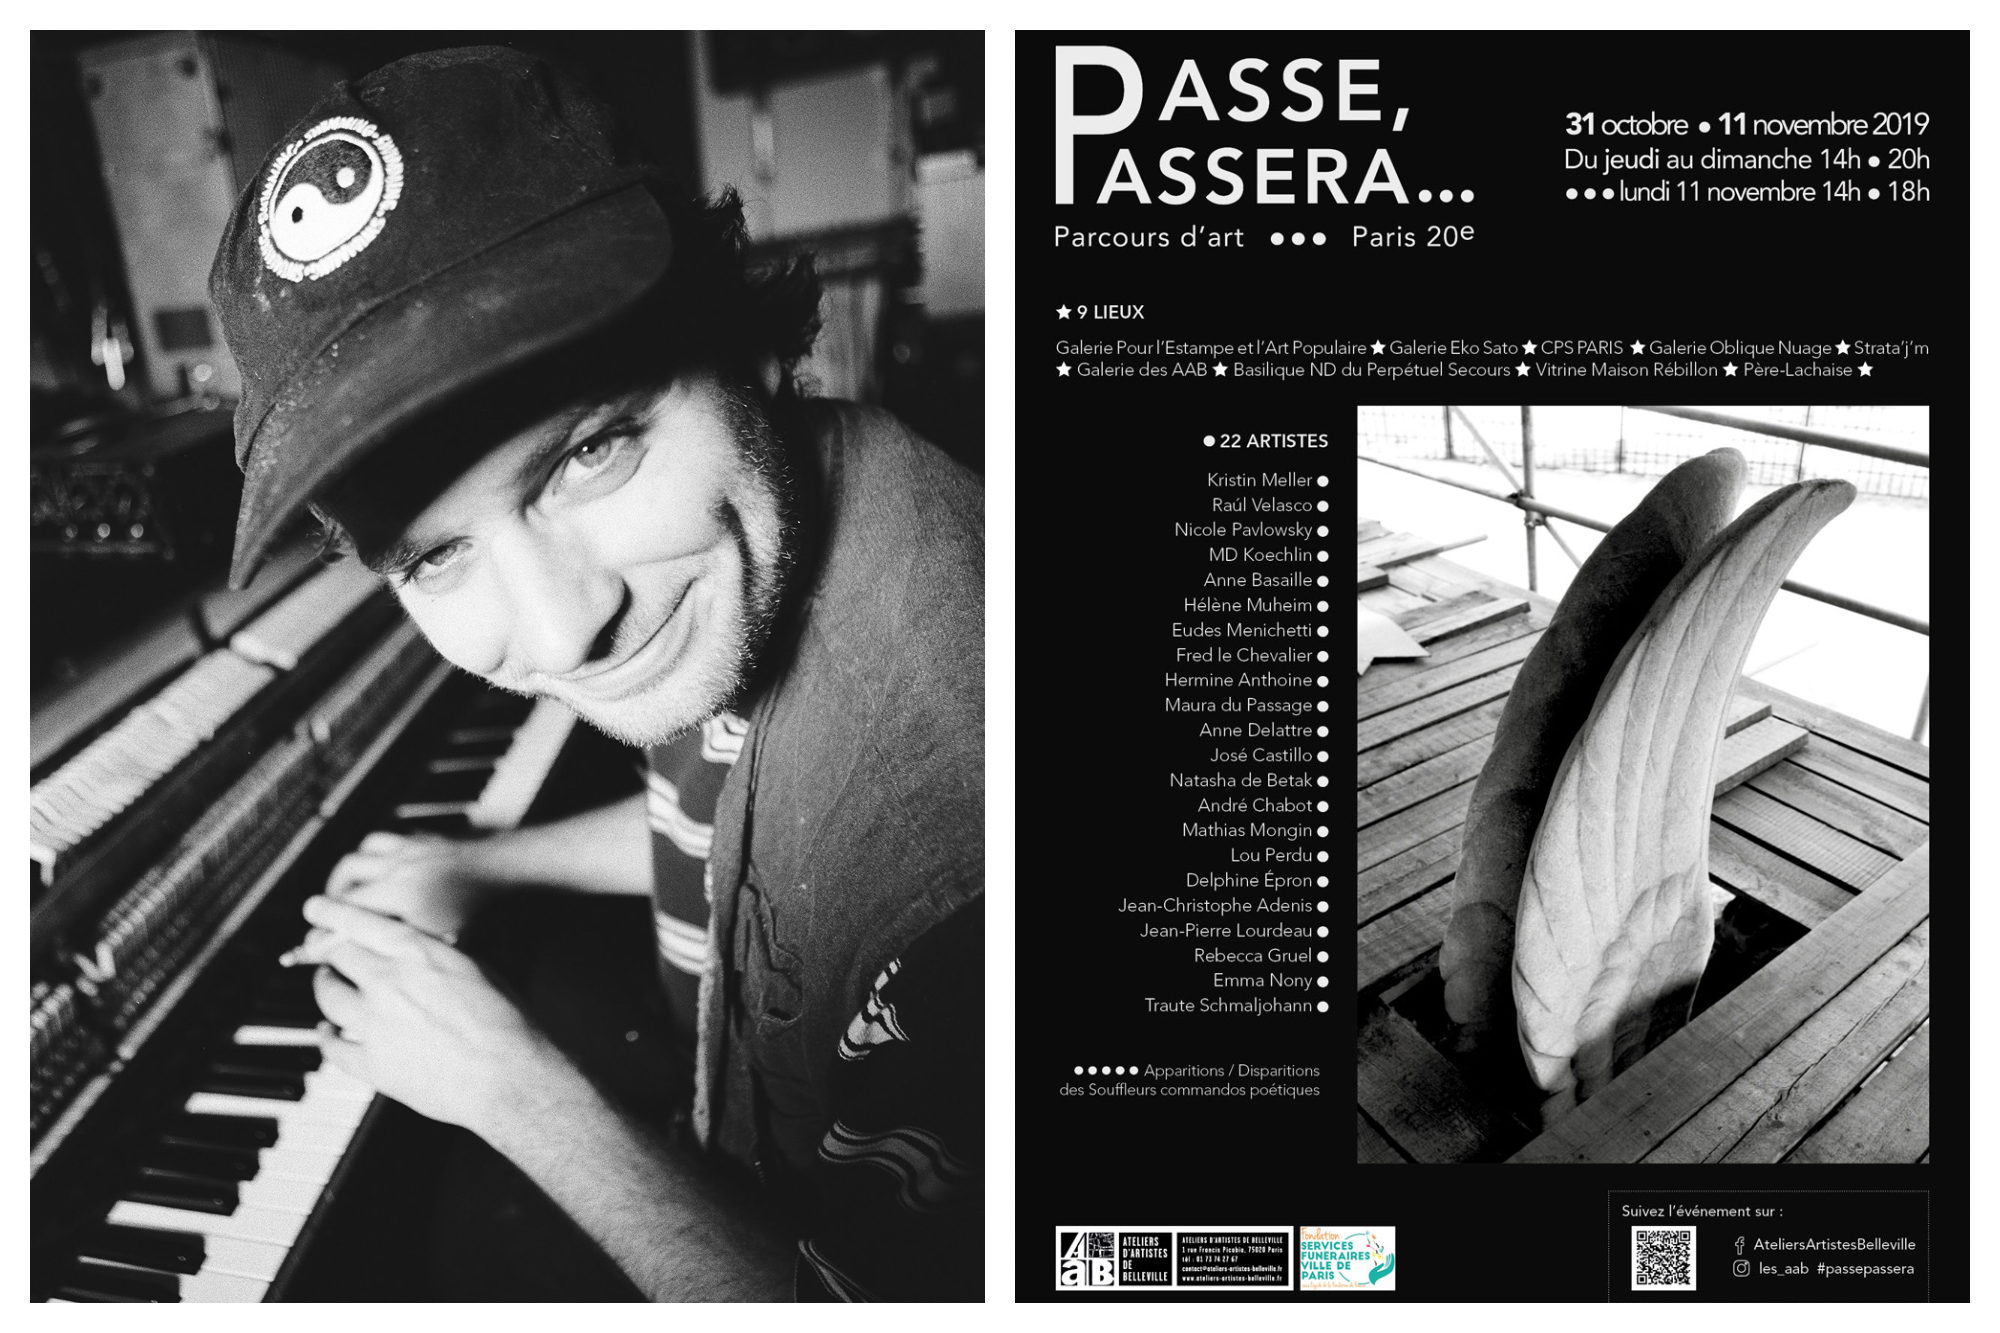 A black and white photograph of DJ Flume playing in Paris in November (left) and a poster for an art event in Belleville (right).